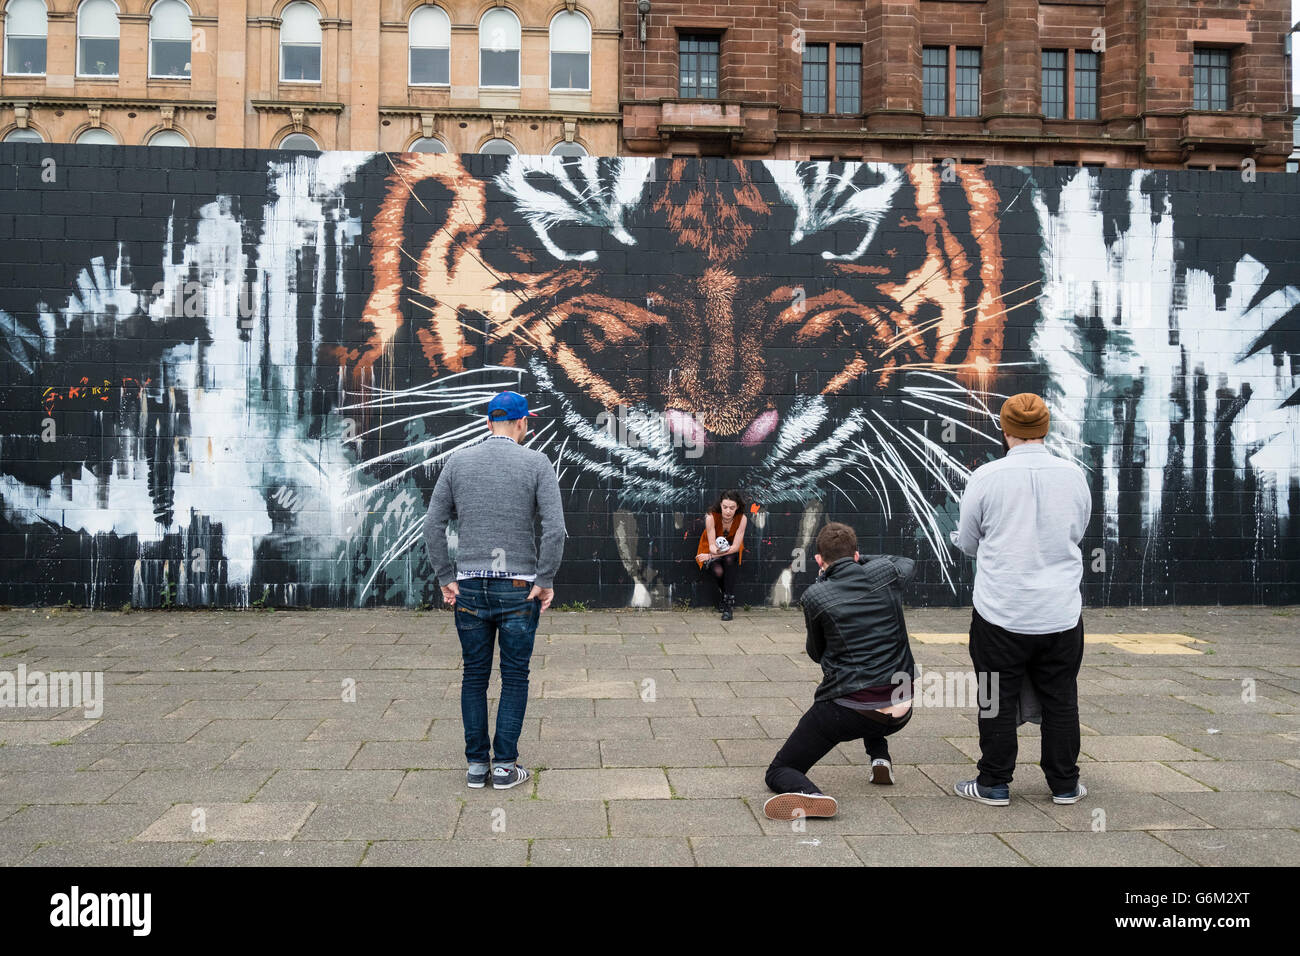 Street scene with tiger mural , street art on walkway beside River Clyde in central Glasgow , Scotland, United Kingdom - Stock Image